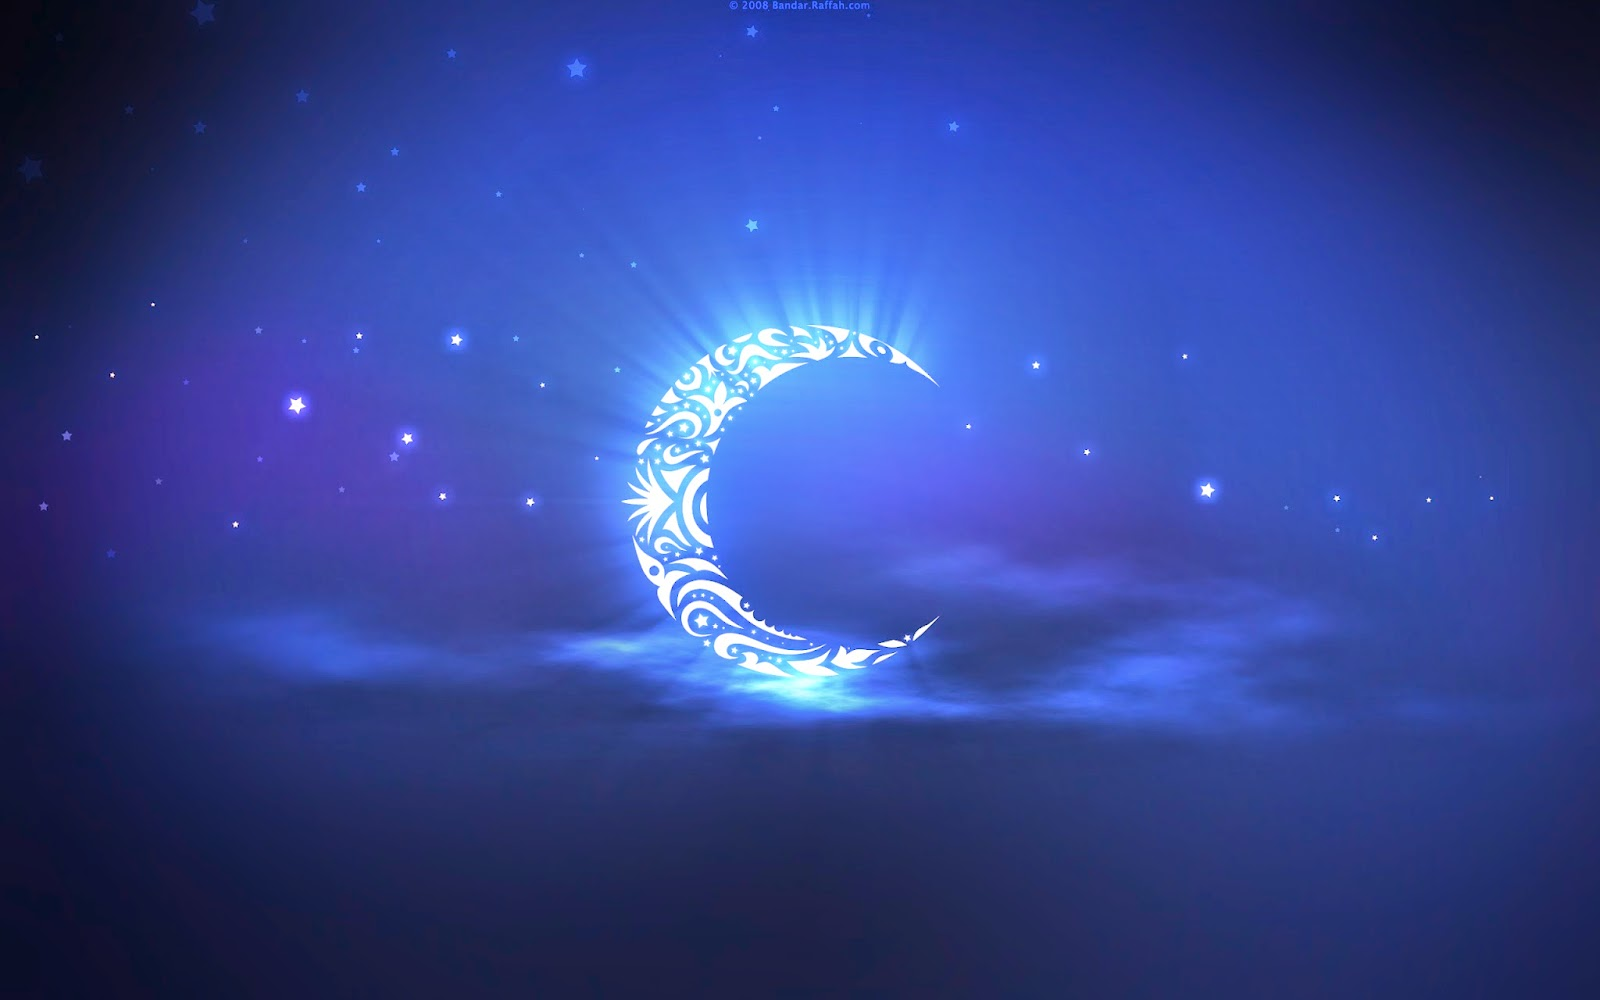 ramadan wallpapers for desktop background Blue